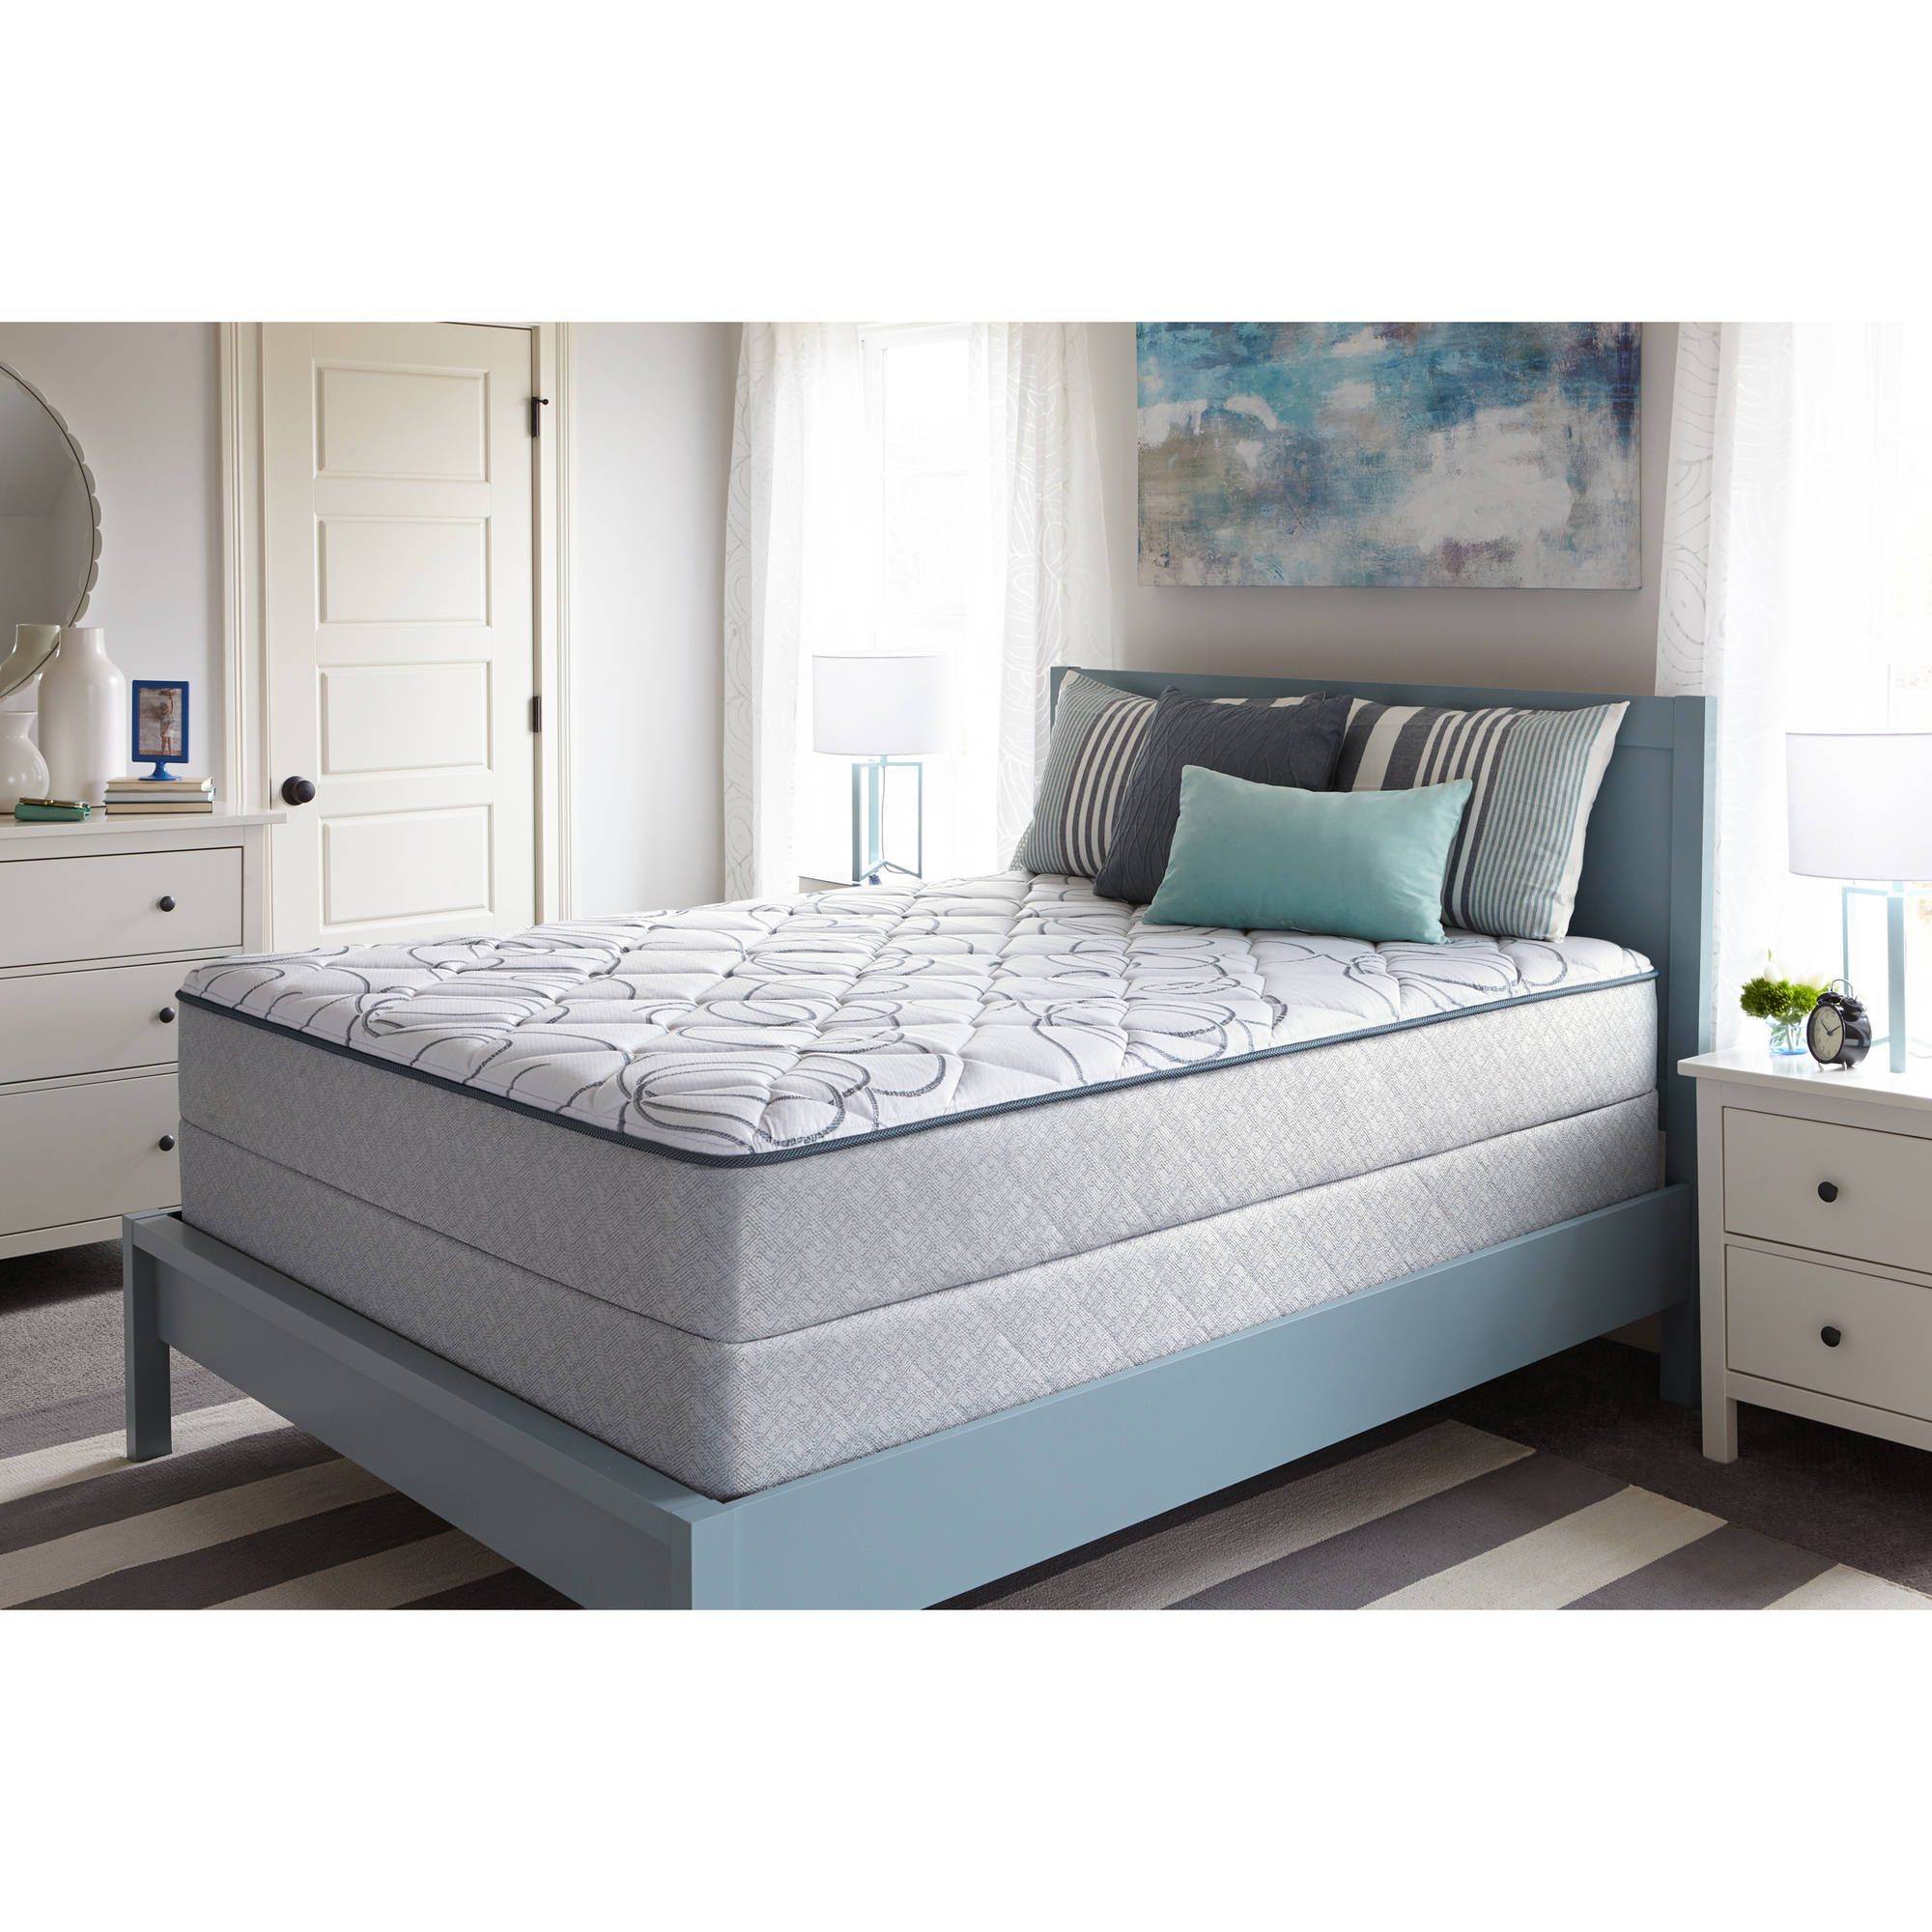 awesome Good Full Size Bed Mattress Set 53 With Additional Home ...